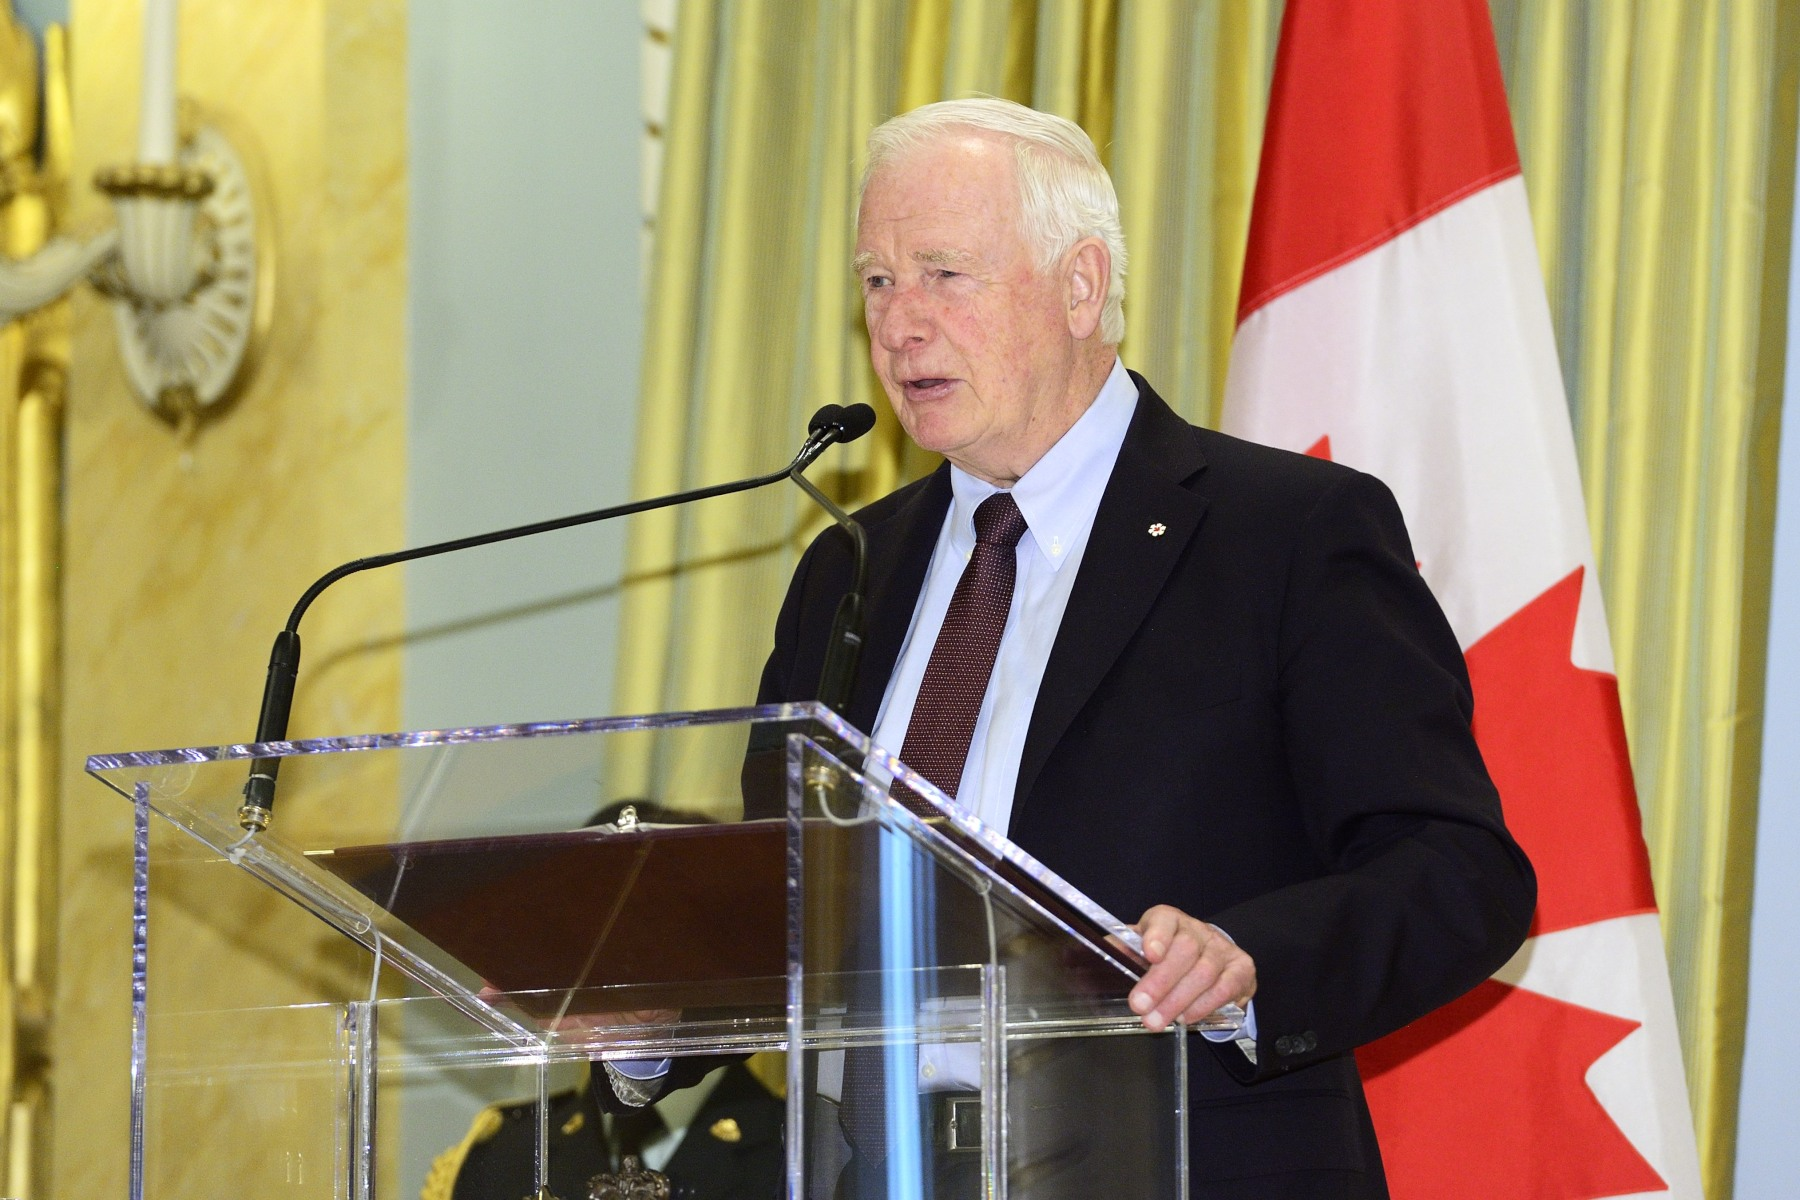 """These awards were created to celebrate that spirit of achievement, and to inspire future innovators to use their creativity to help others. We want to strengthen the culture of innovation in Canada. Some of the world's top innovators live among us, yet we don't share our stories or celebrate that fact enough."""